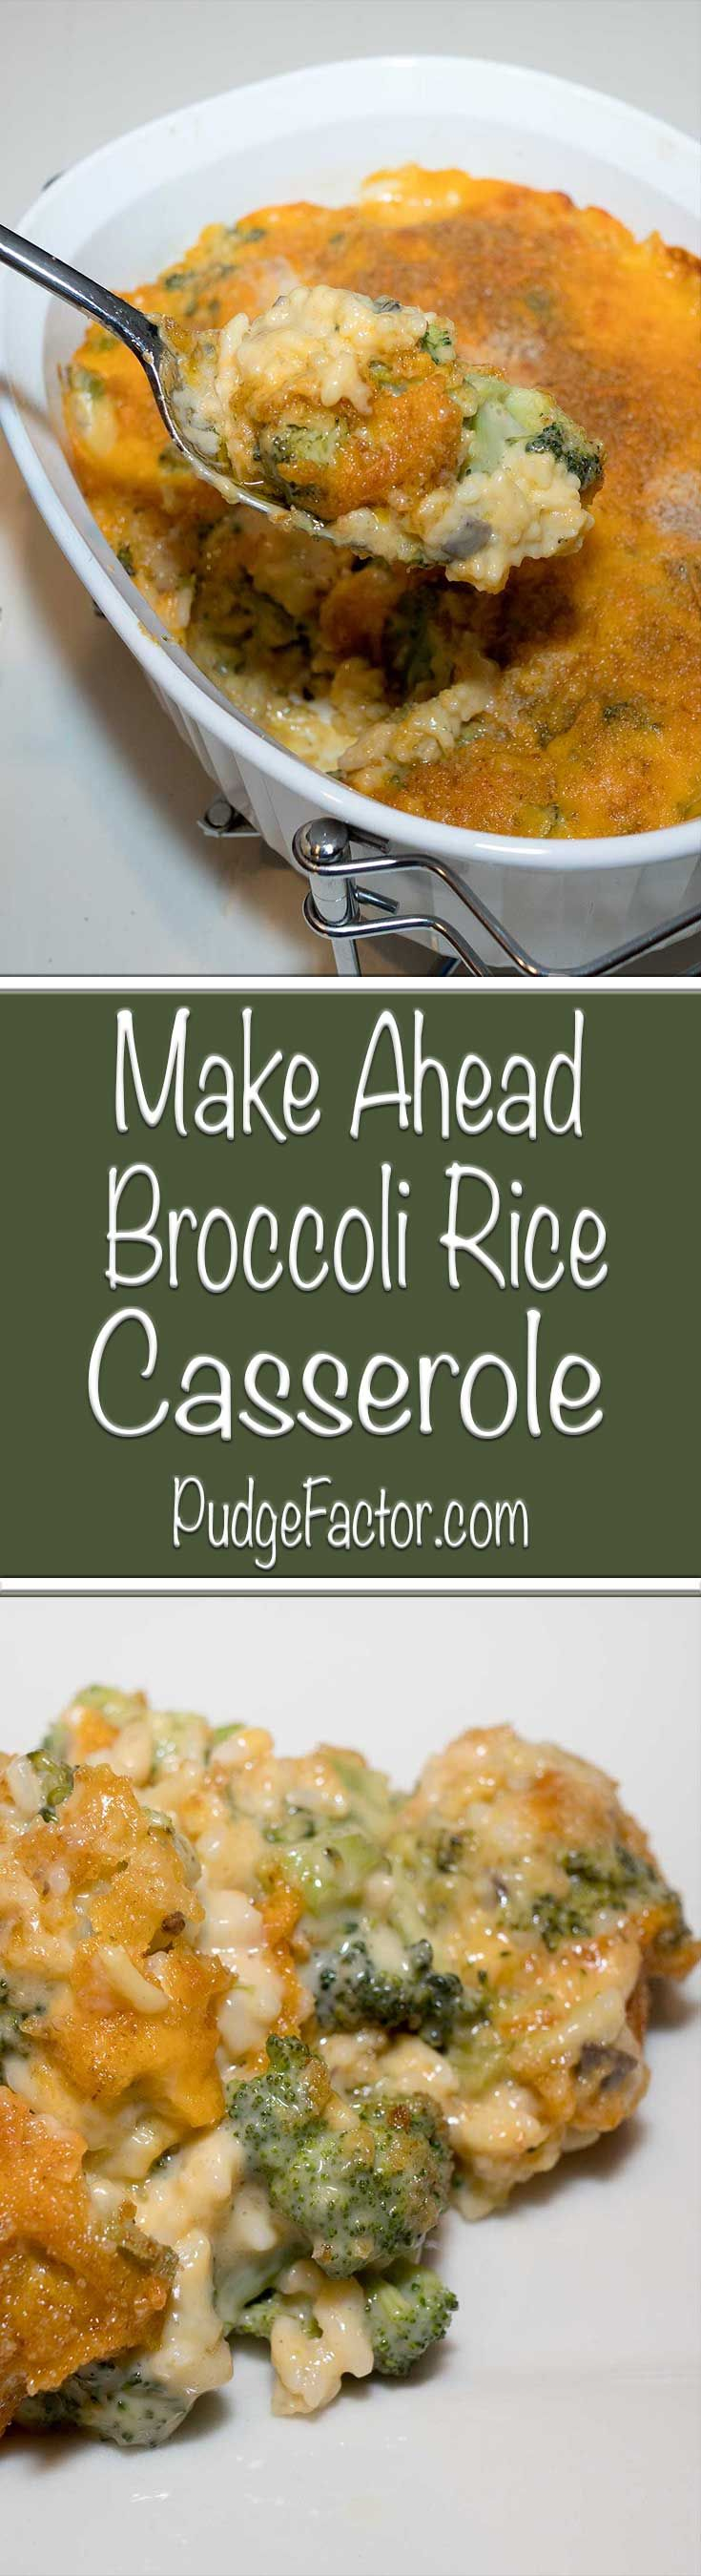 Creamy and cheesy Broccoli Rice Casserole - a delicious make ahead side dish for your Thanksgiving feast.